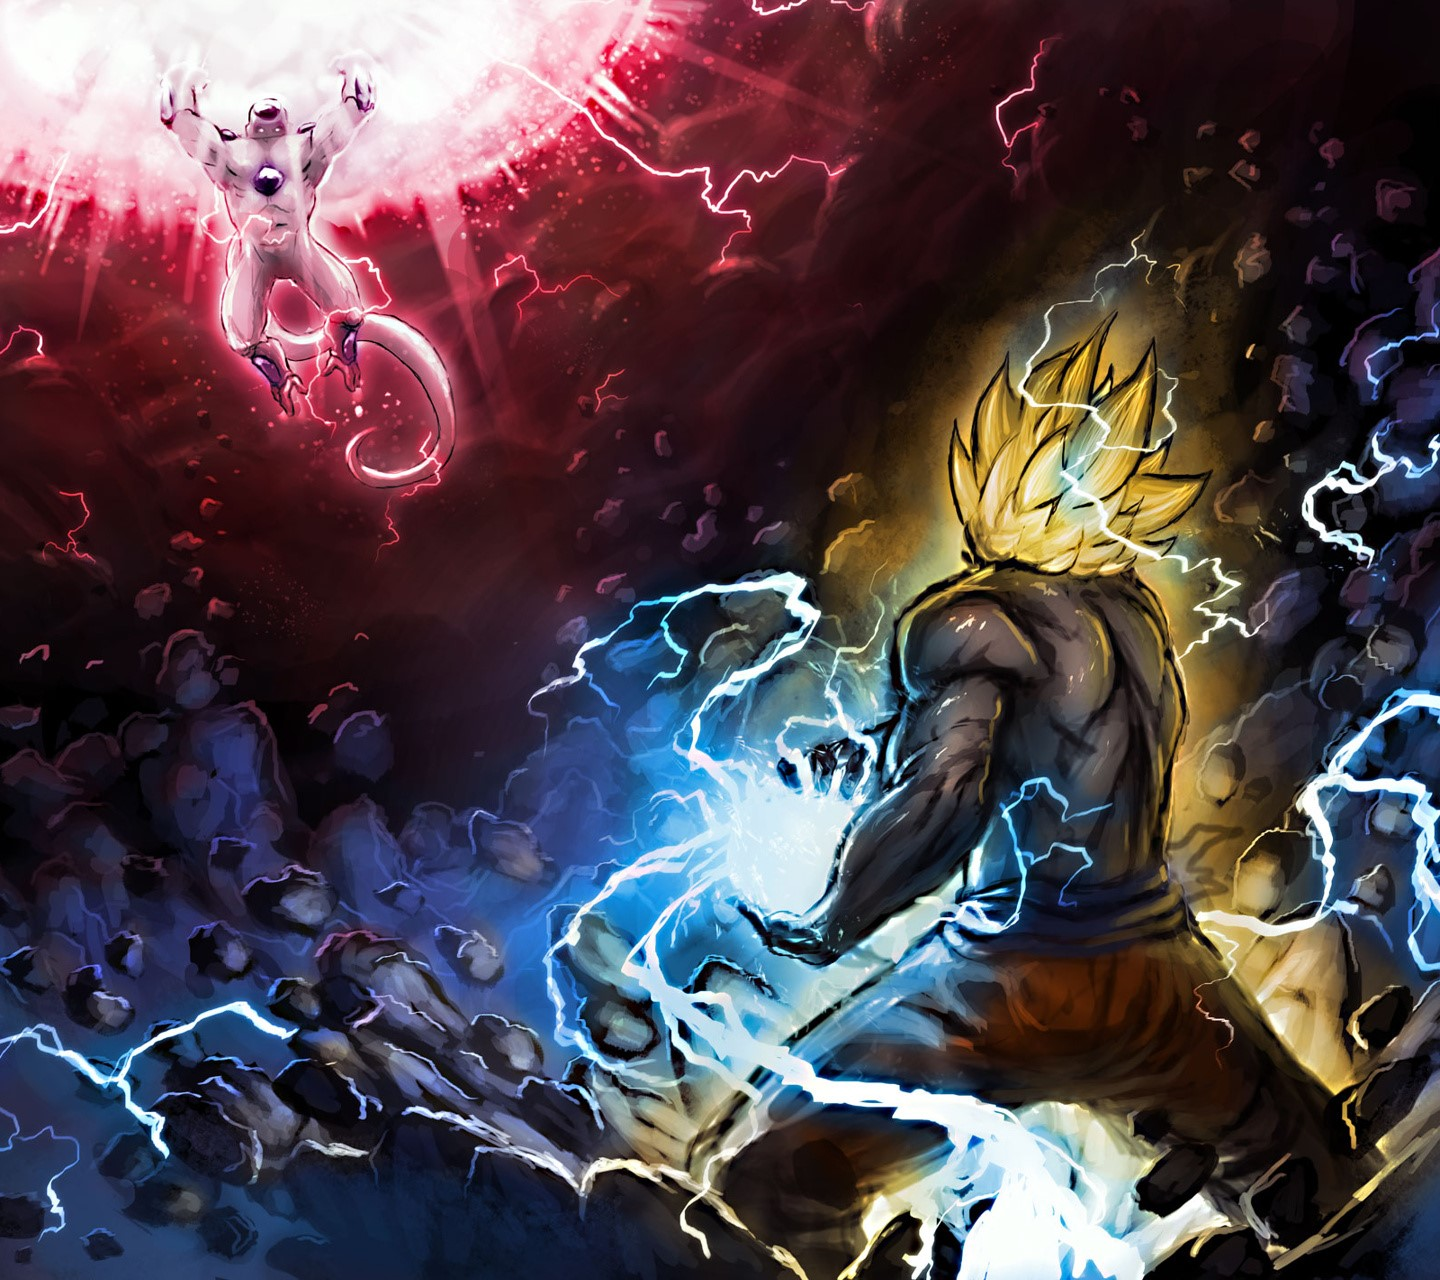 Goku Vs Frieza wallpaper 9338404